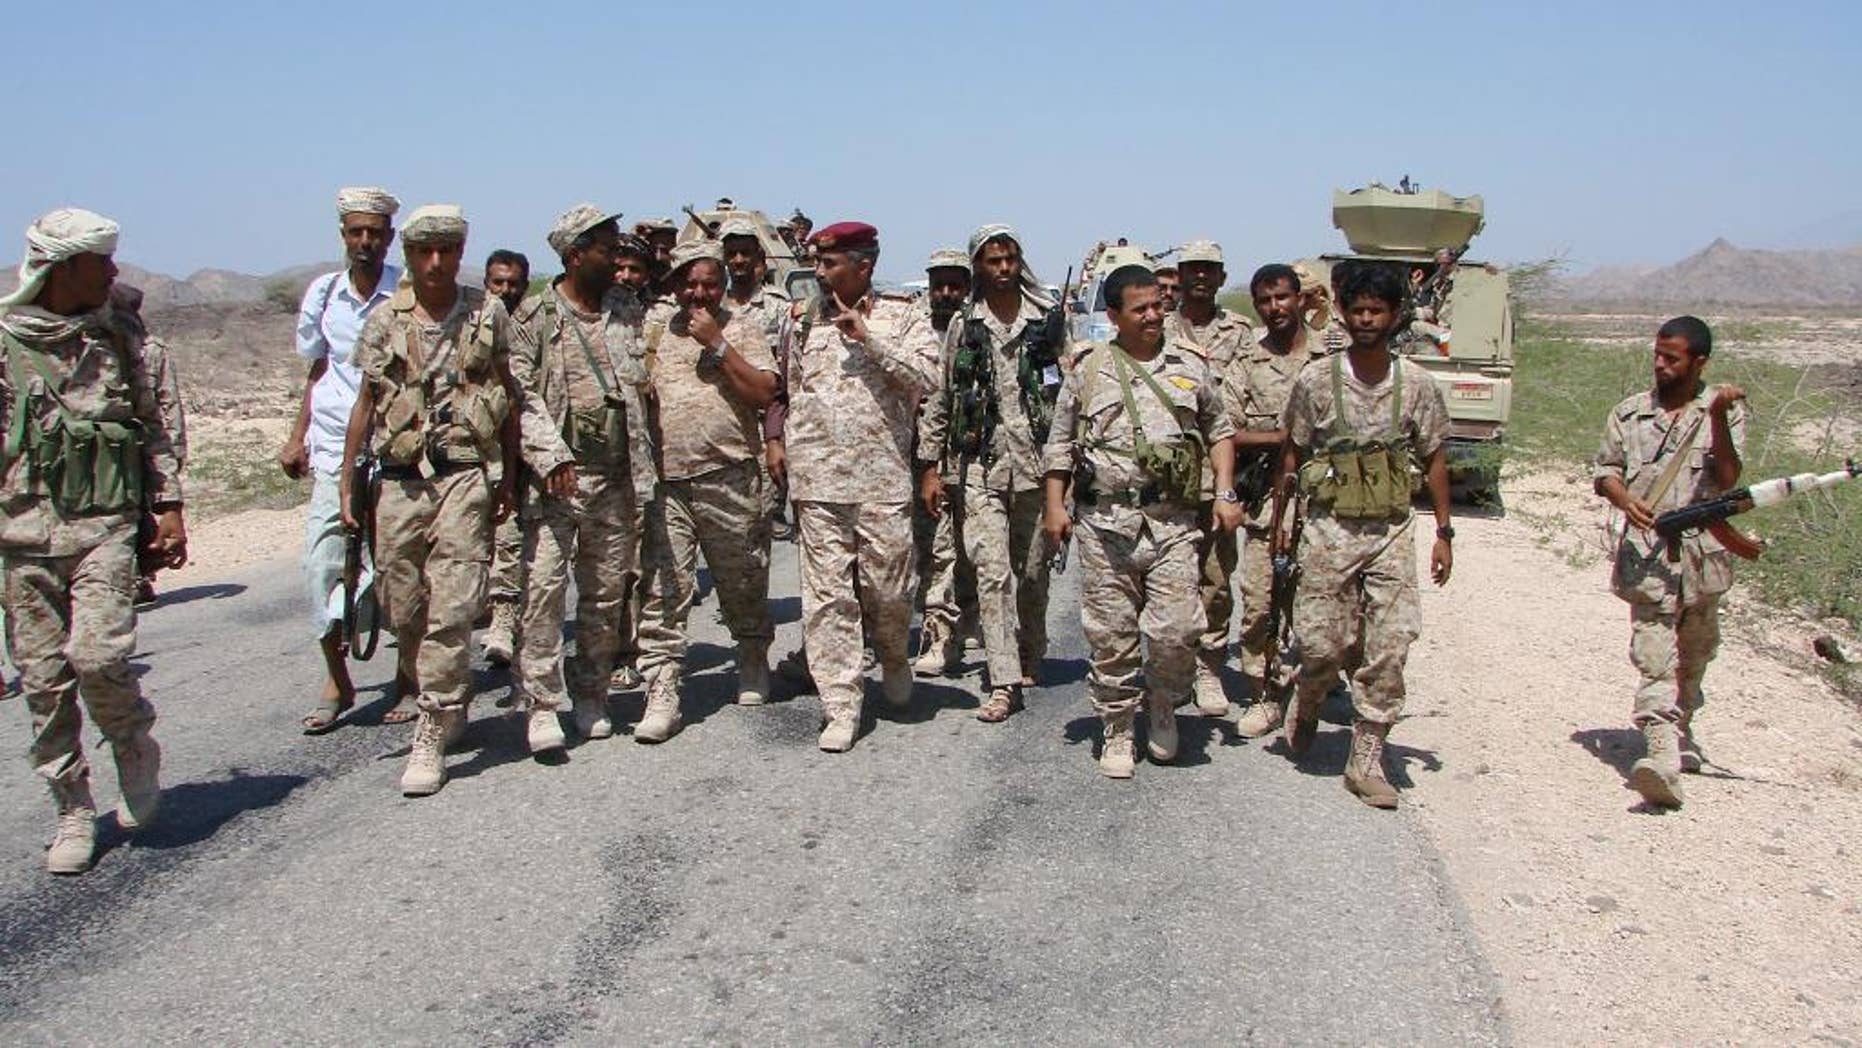 In this Friday, May 1, 2014, photo provided by Yemen's Defense Ministry, army officers and soldiers patrol a road during fighting with al-Qaida militants in Majala of the southern province of Abyan, Yemen. (AP Photo/Yemen's Defense Ministry)